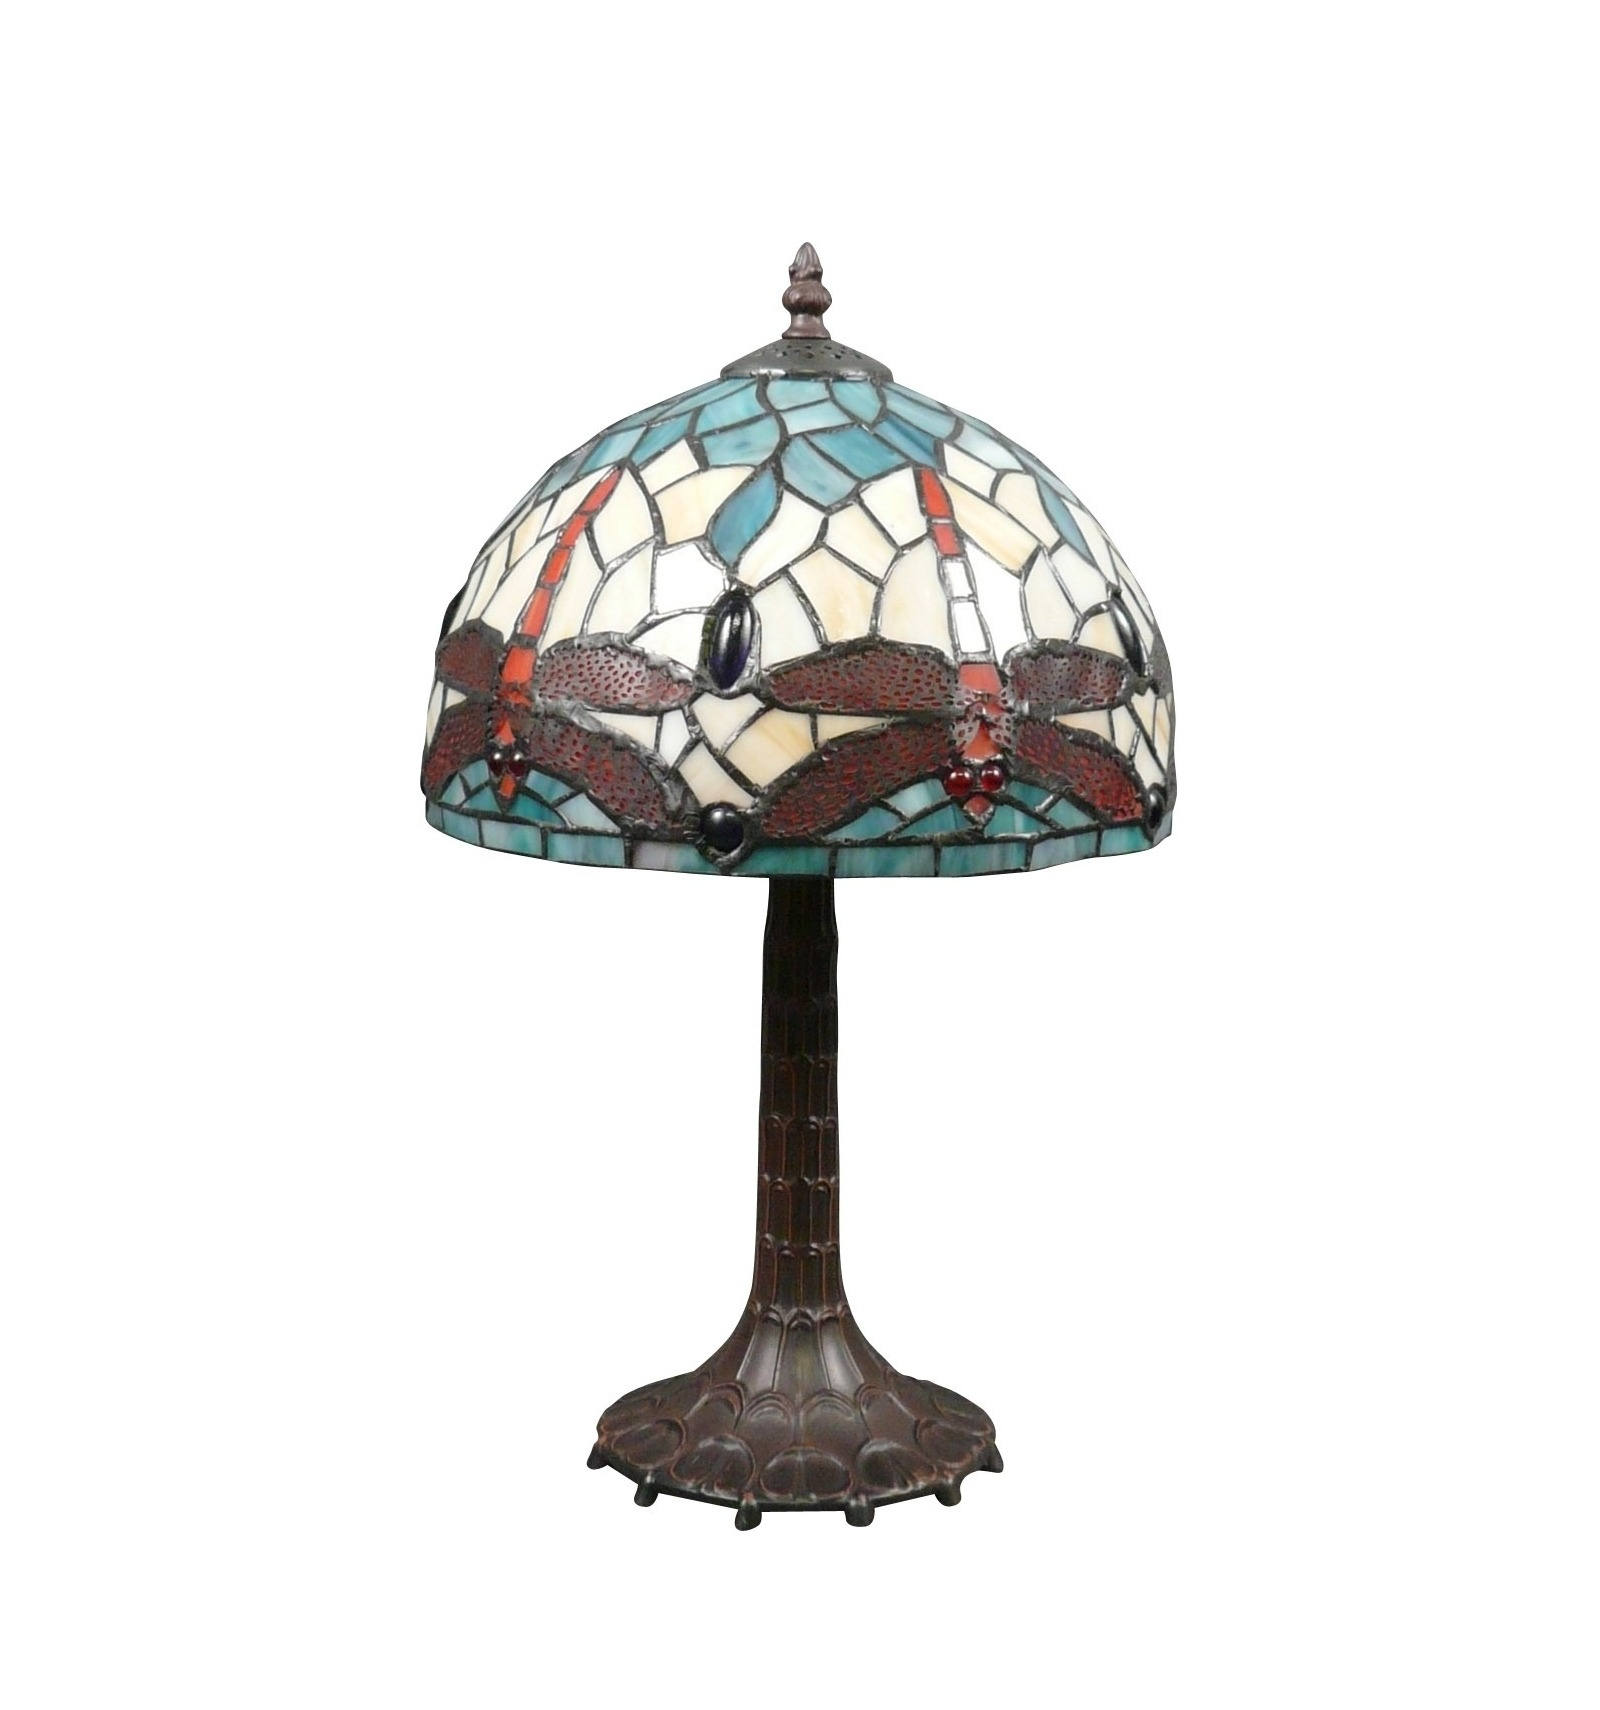 lampe tiffany libellules de style art nouveau mobilier art d co. Black Bedroom Furniture Sets. Home Design Ideas